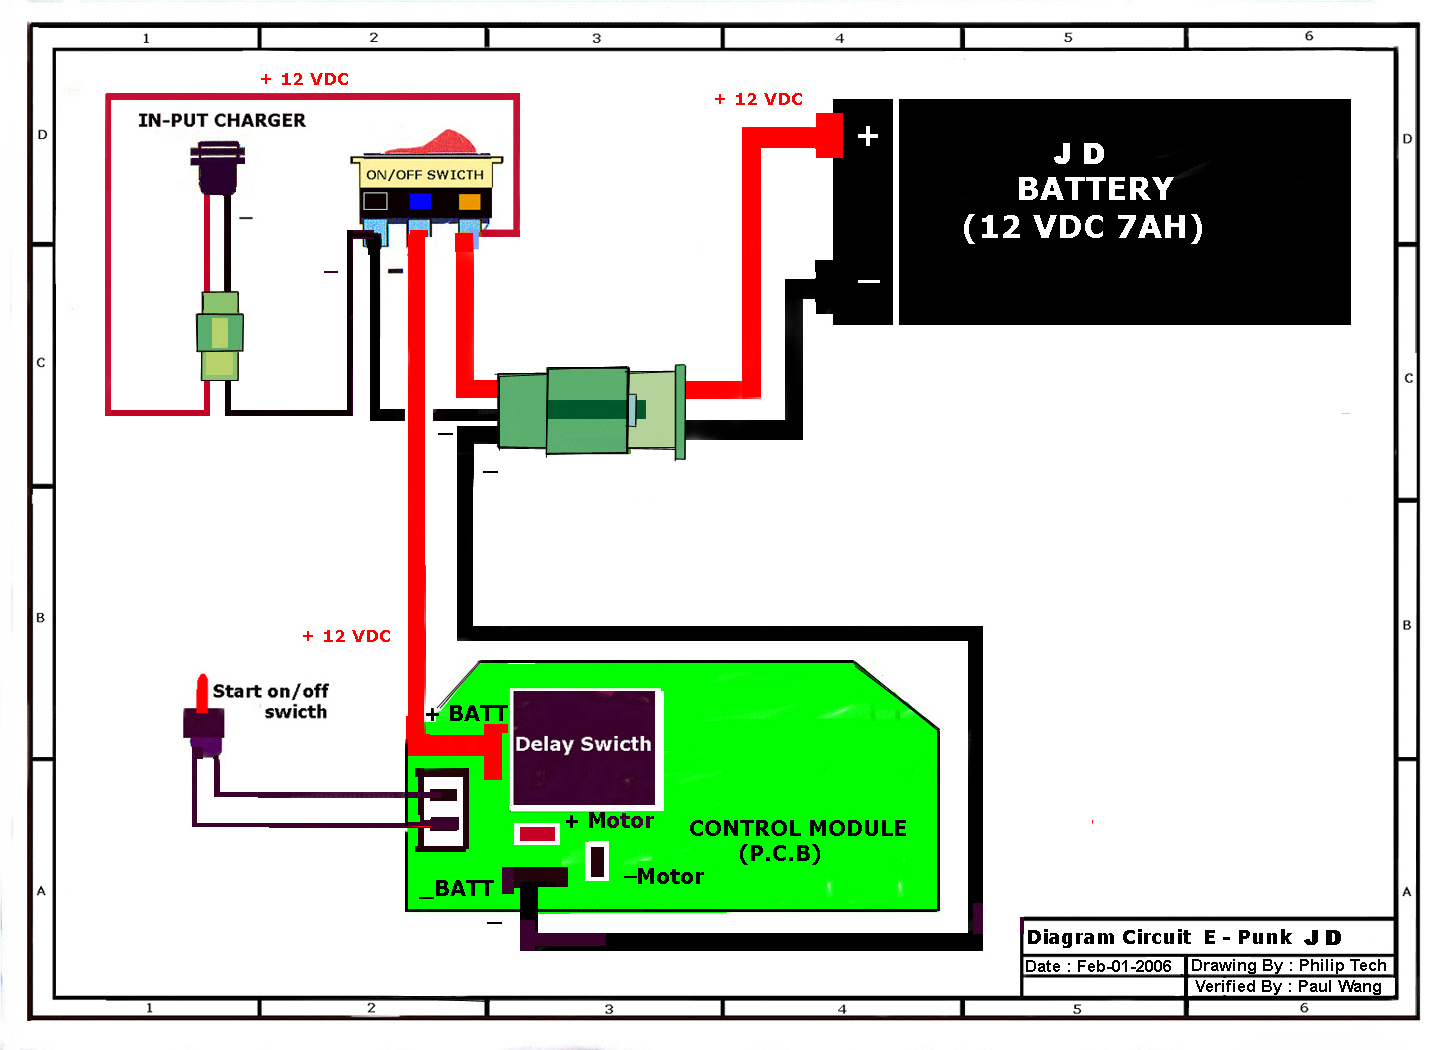 hight resolution of razor electric scooter wiring diagram razor scooter diagram 50 cc scooter razor wiring diagram razor scooter